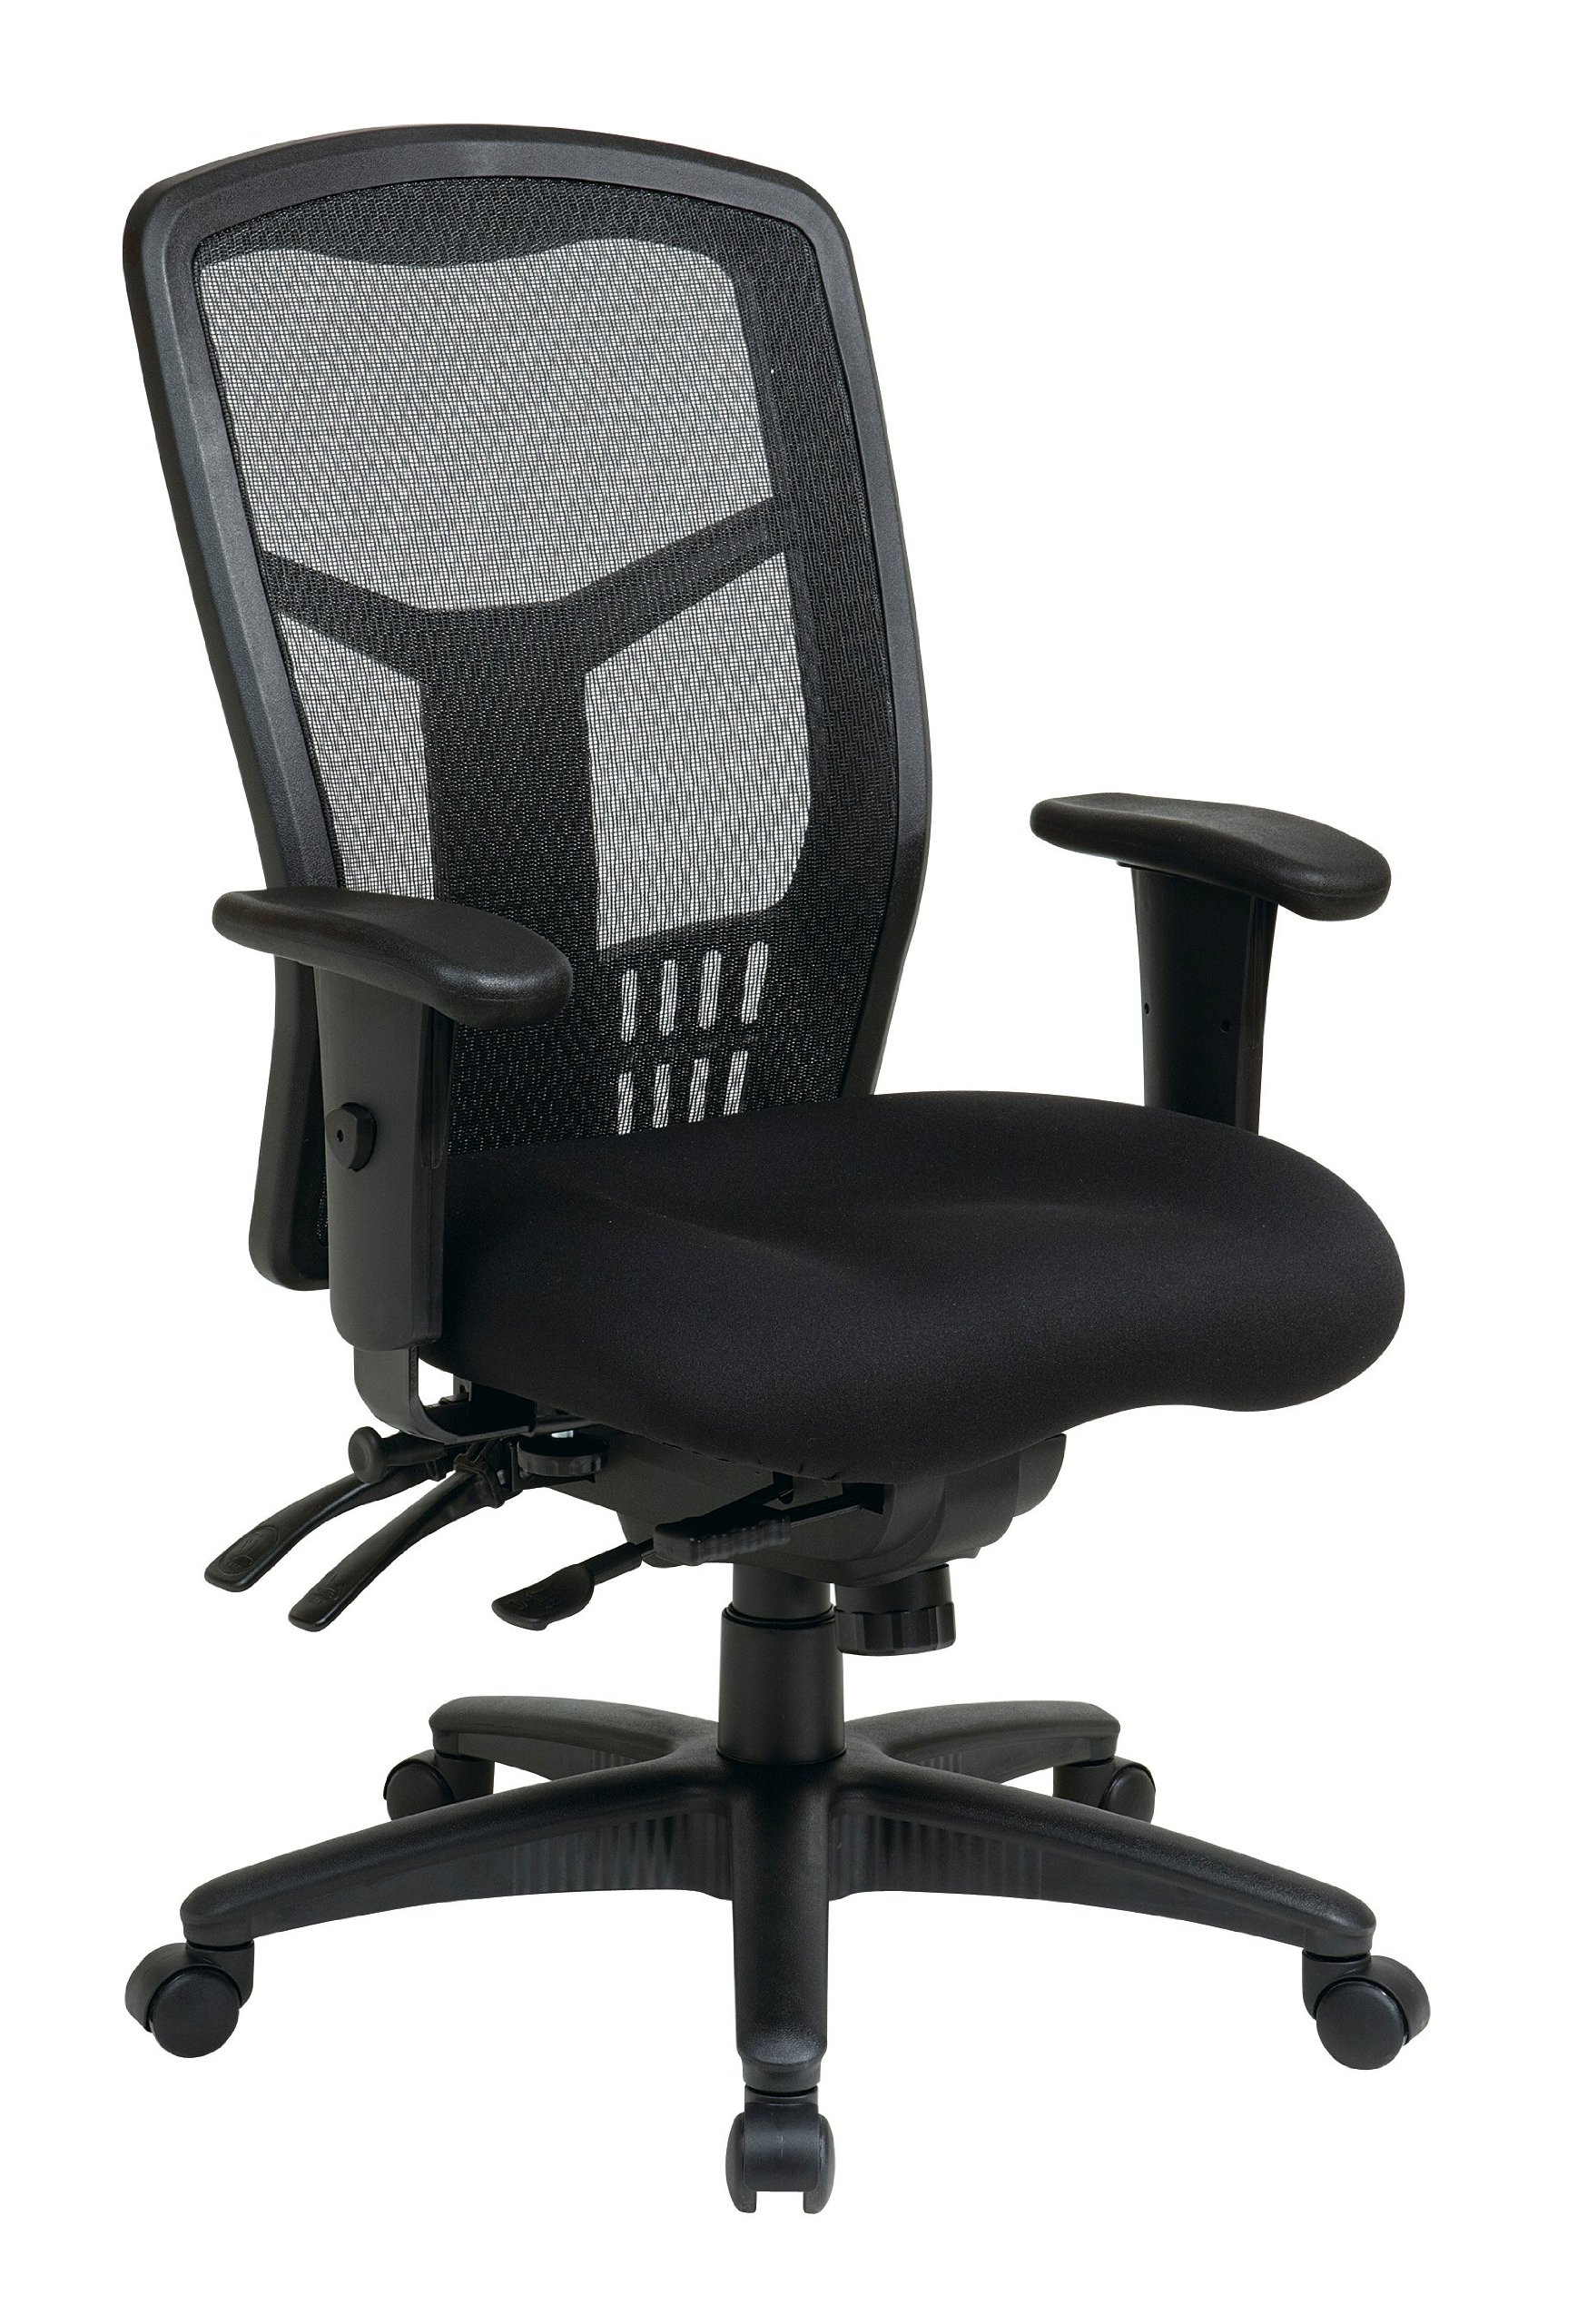 Office Star High Back ProGrid Back FreeFlex Seat with Adjustable Arms and Multi-Function and Seat Slider, Black Managers Chair by Office Star